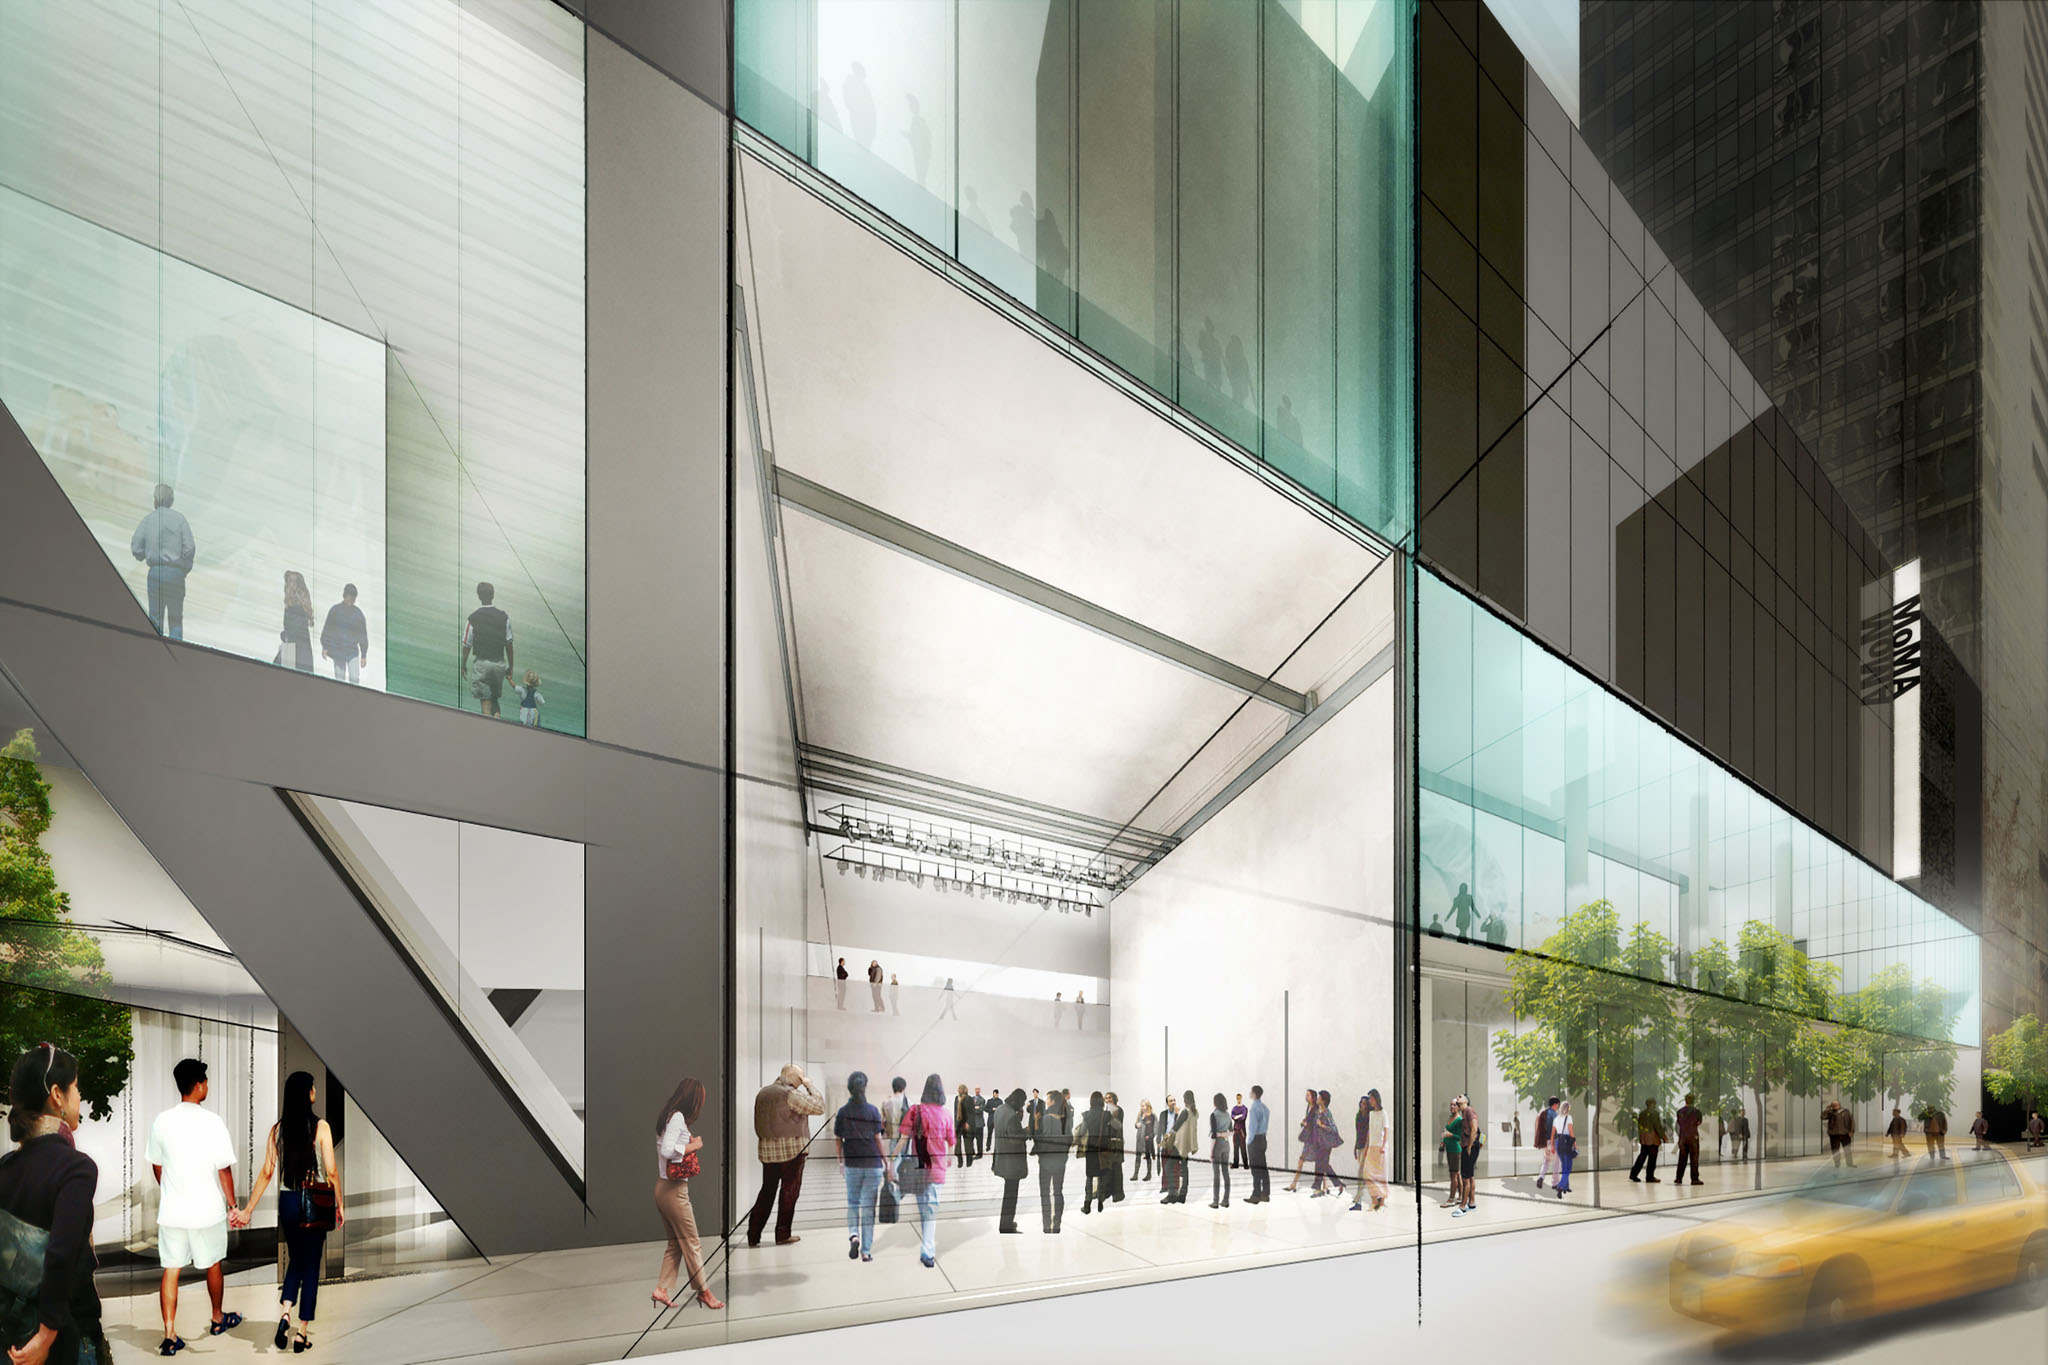 MoMA reveals its new expansion plans and the fate of the former American Folk Art Museum